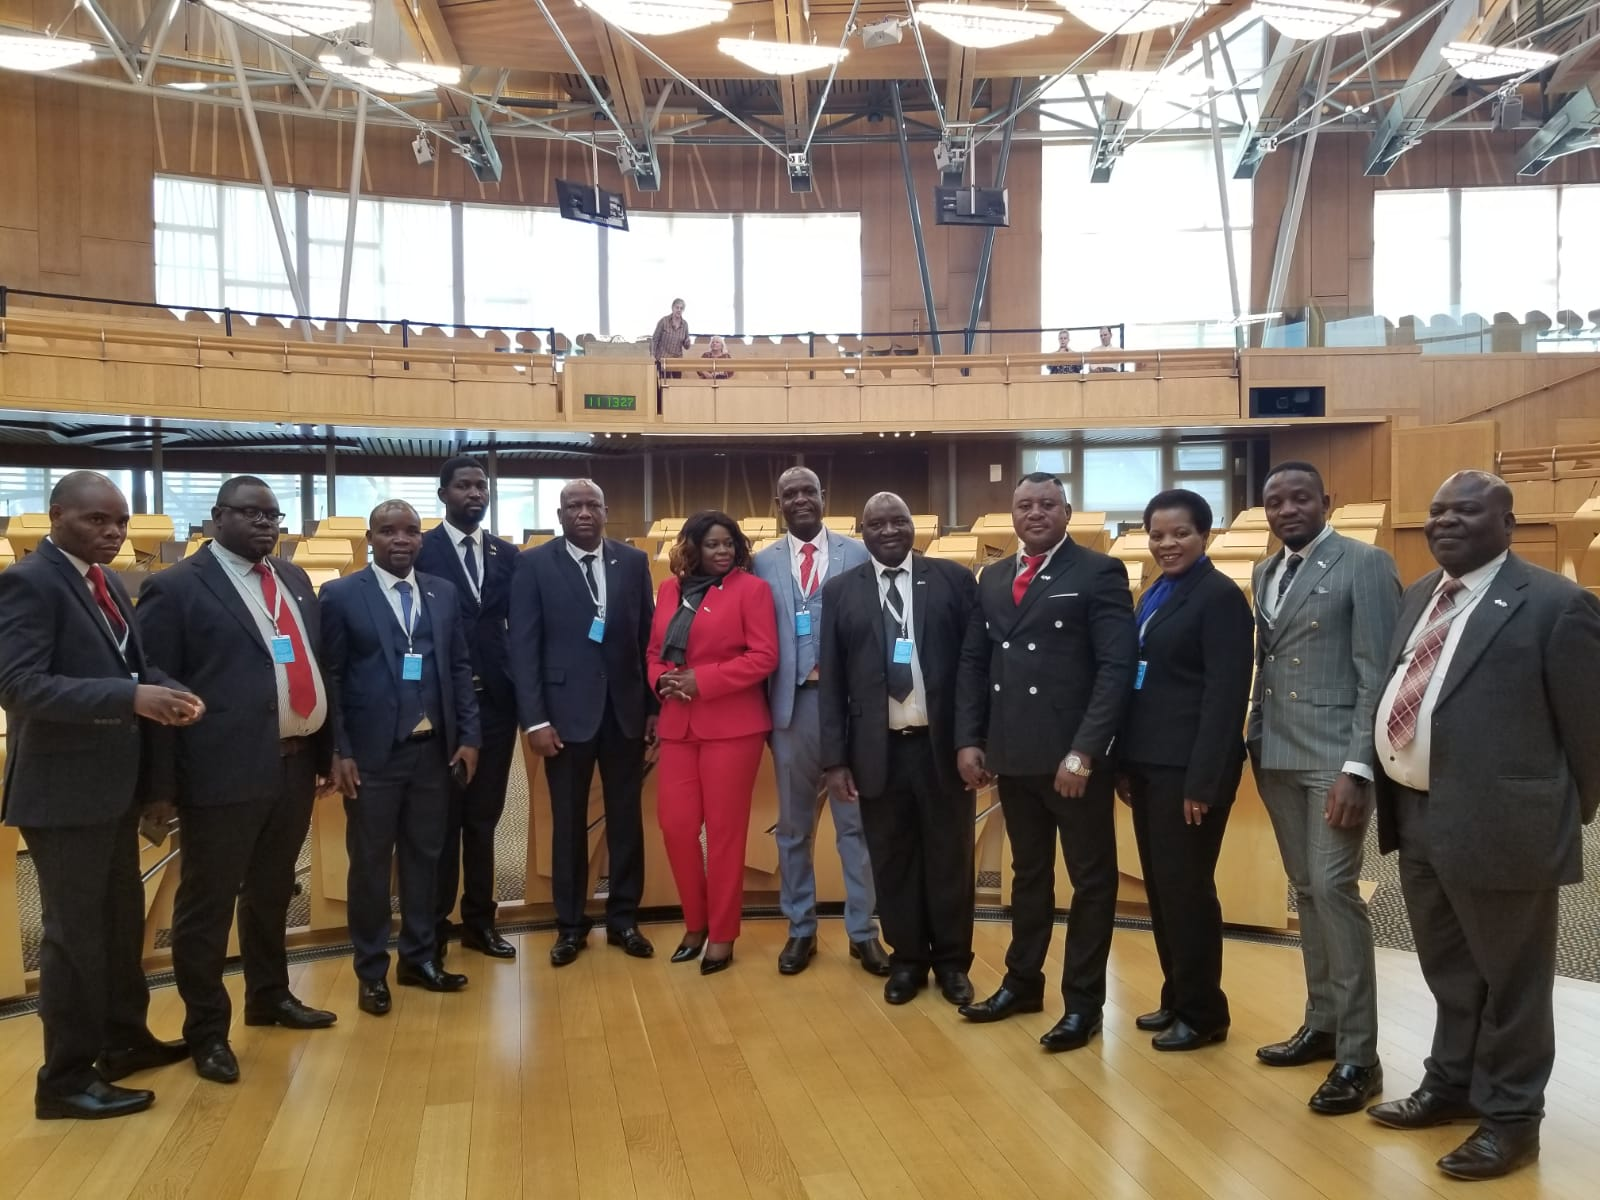 CP4D Malawi Delegates in Scottish Parliament Chamber